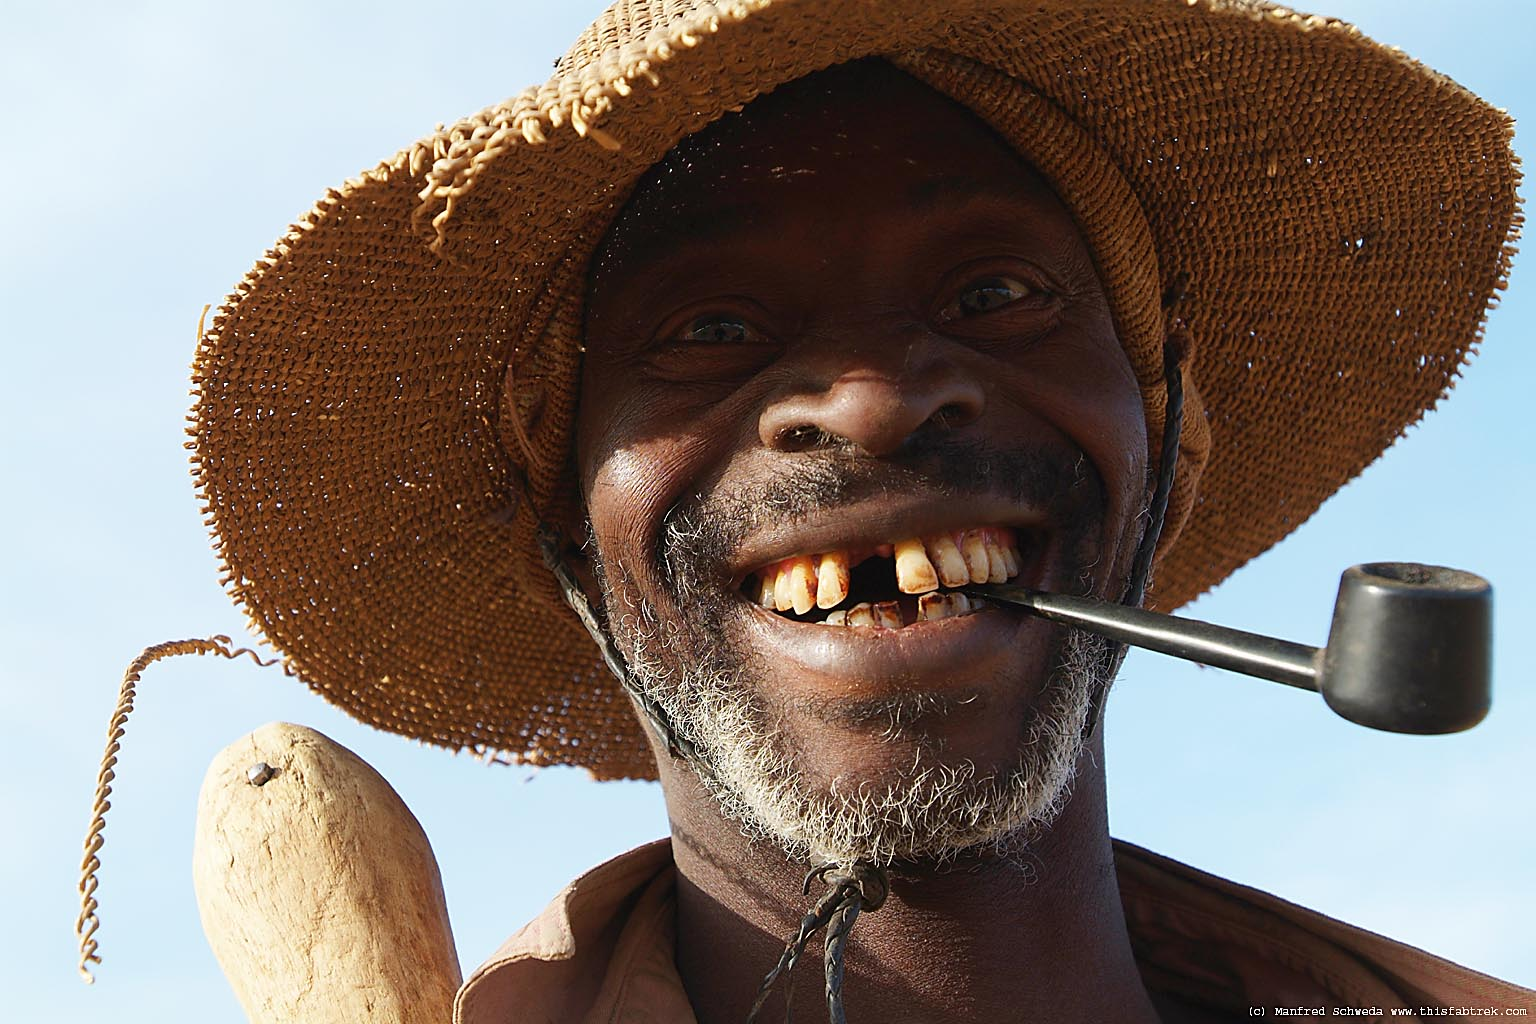 http://www.thisfabtrek.com/journey/africa/mali/20071228-mopti/togoulou-togo-cultivateur-mali-smile-4.jpg